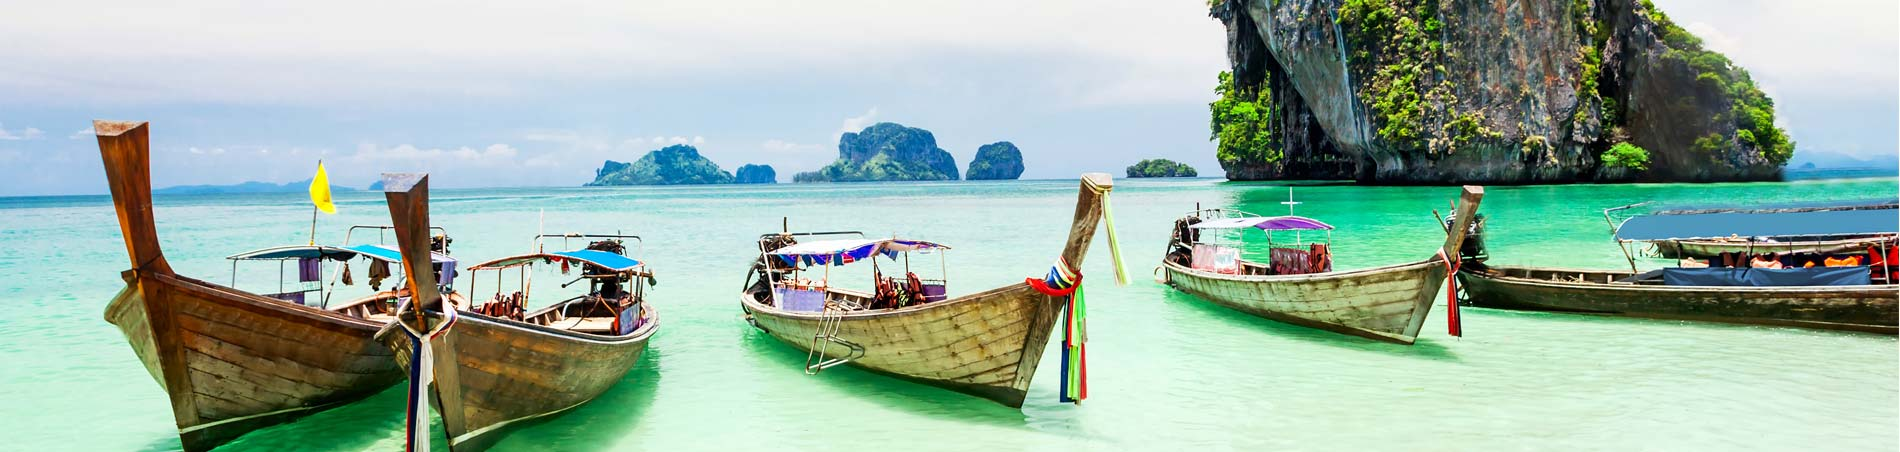 Guide destination thailande